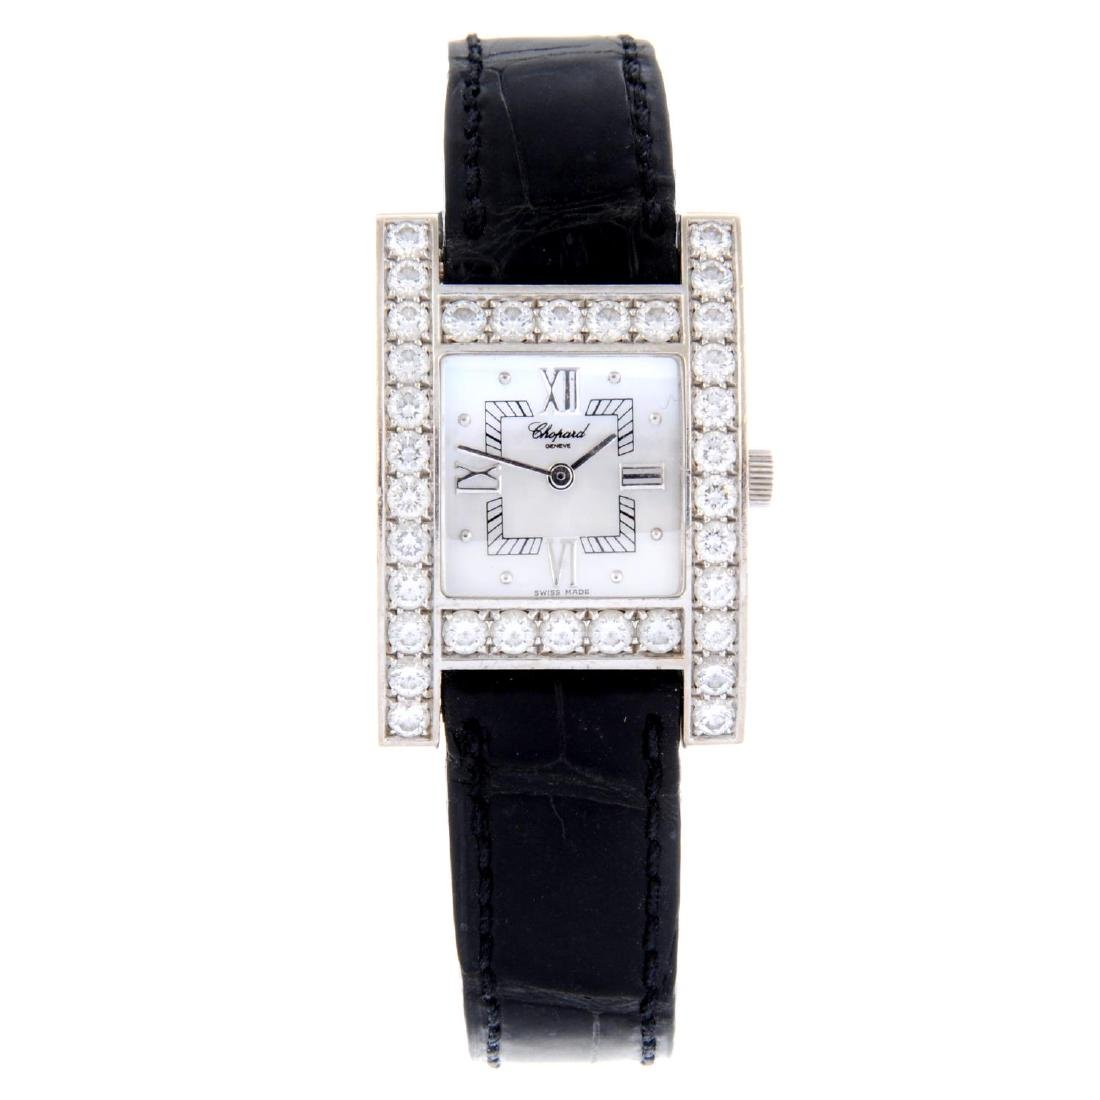 CHOPARD - a lady's Your Hour wrist watch. 18ct white